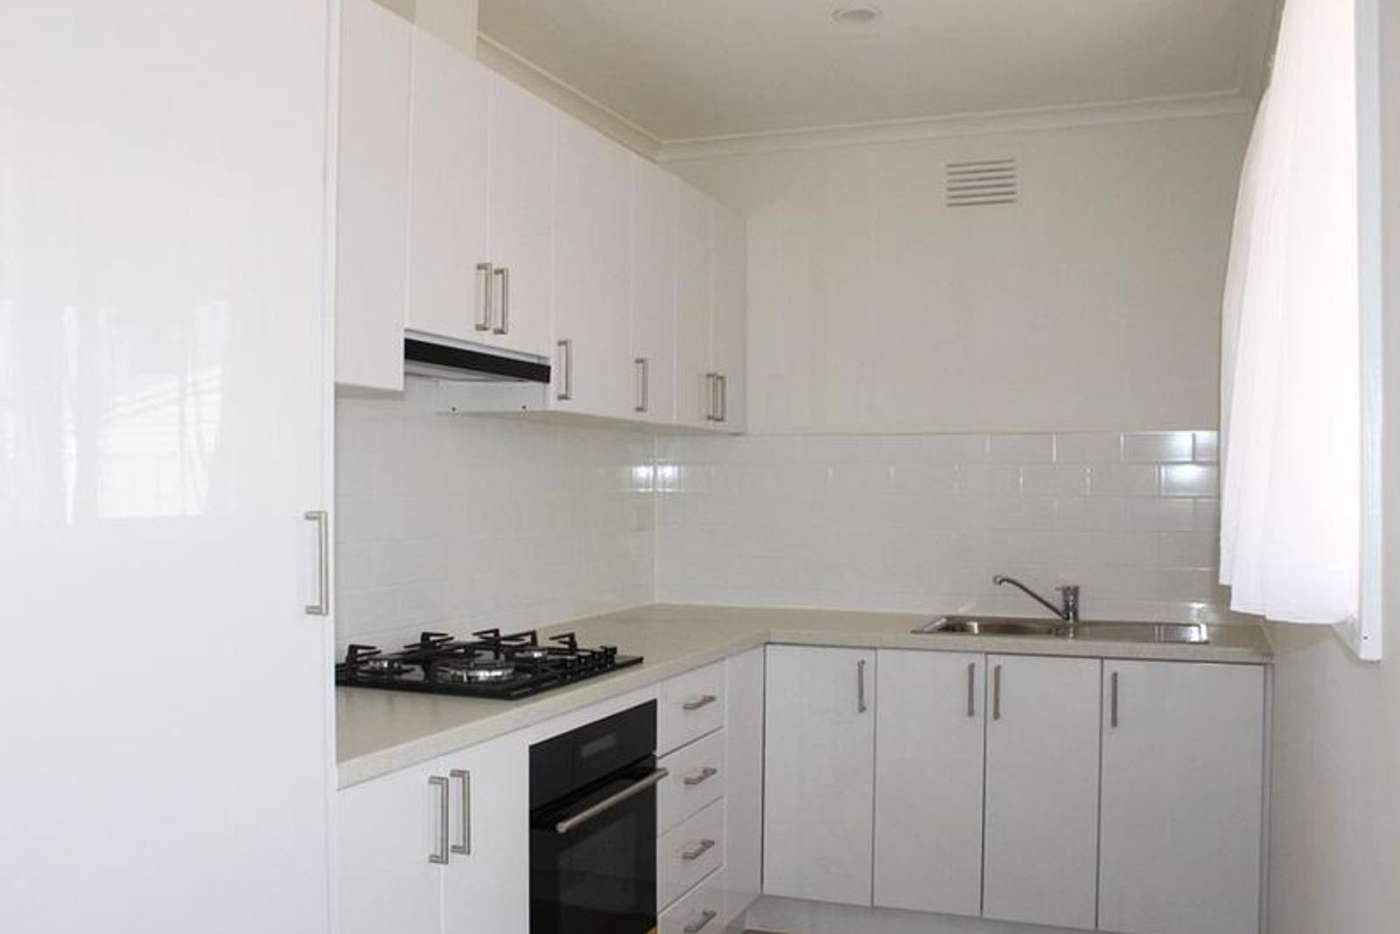 Main view of Homely house listing, 51 Warmington Road, Sunshine West VIC 3020